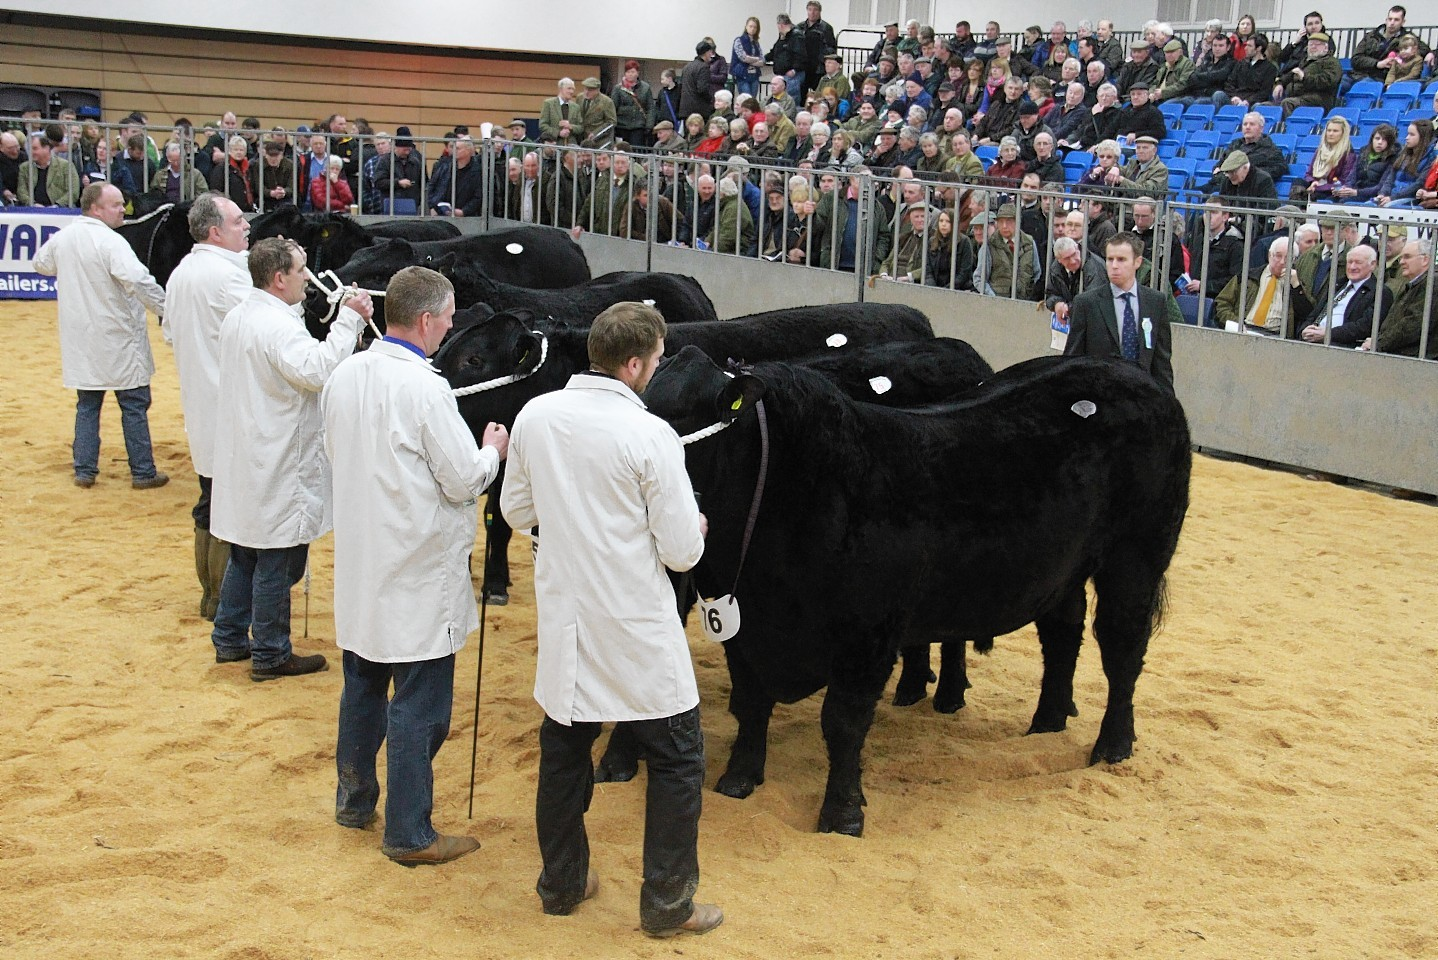 Cattle on show at the Spring Show